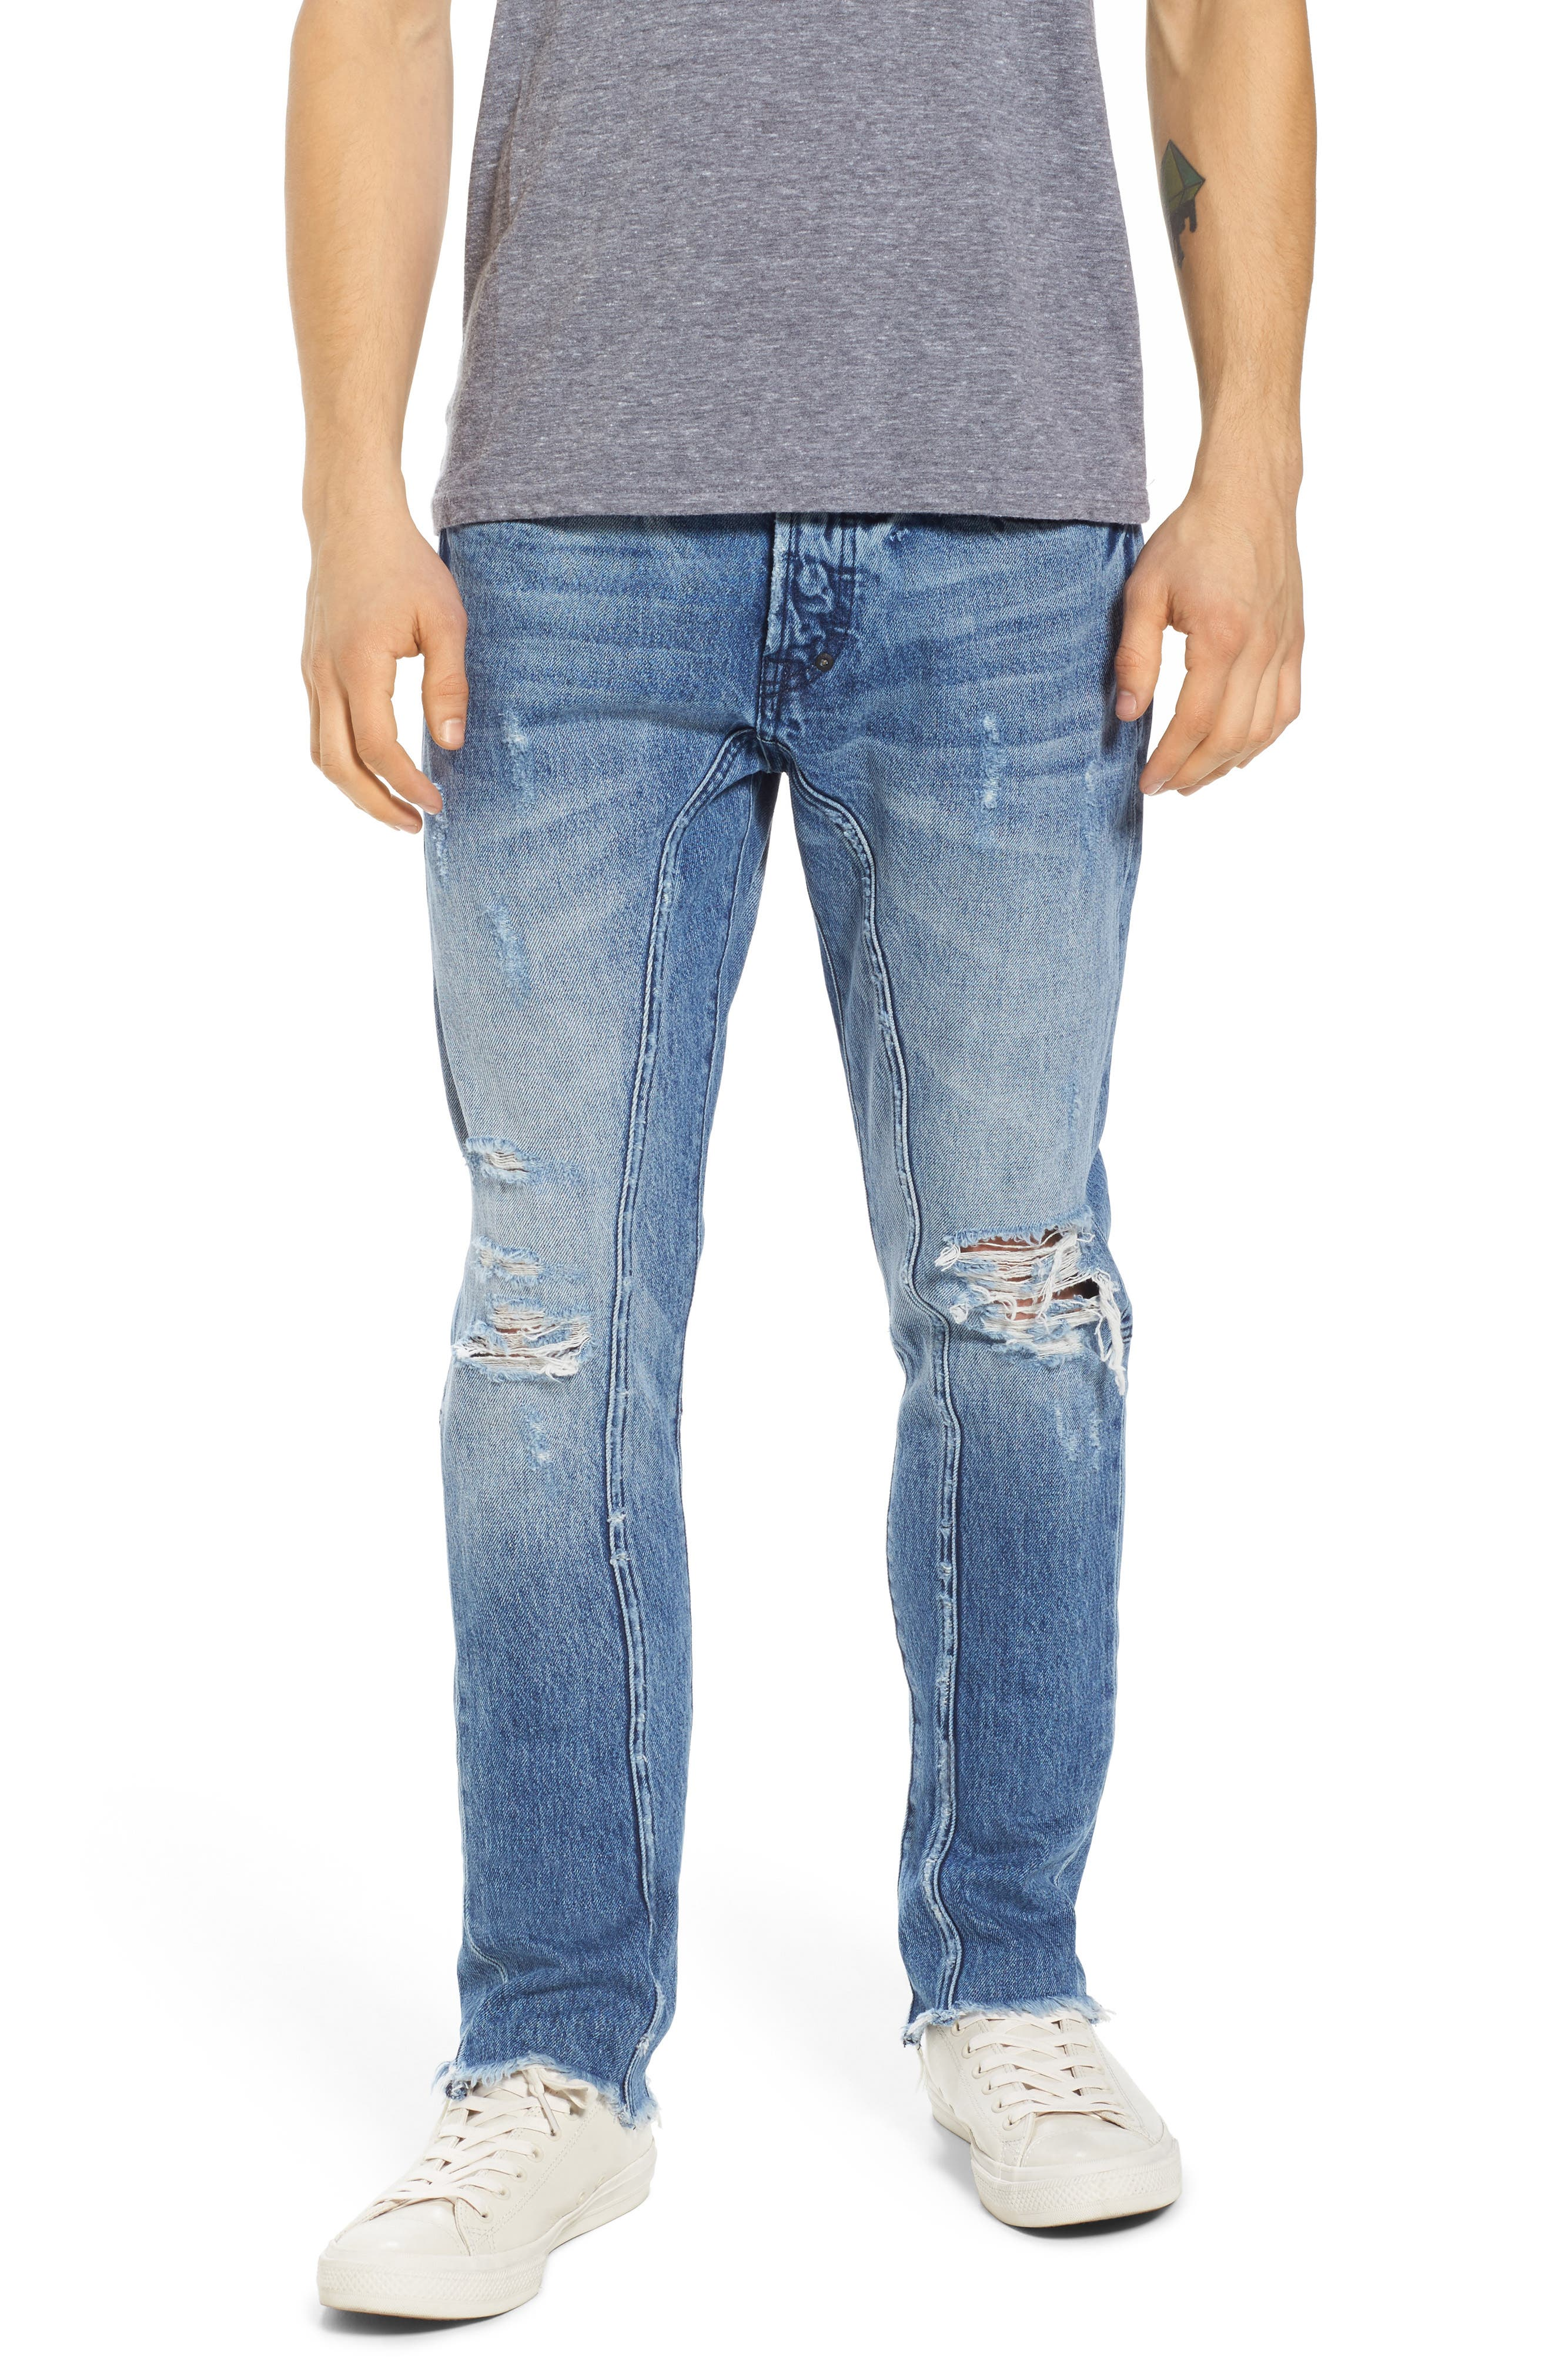 Le Sabre Tapered Fit Jeans,                             Main thumbnail 1, color,                             490